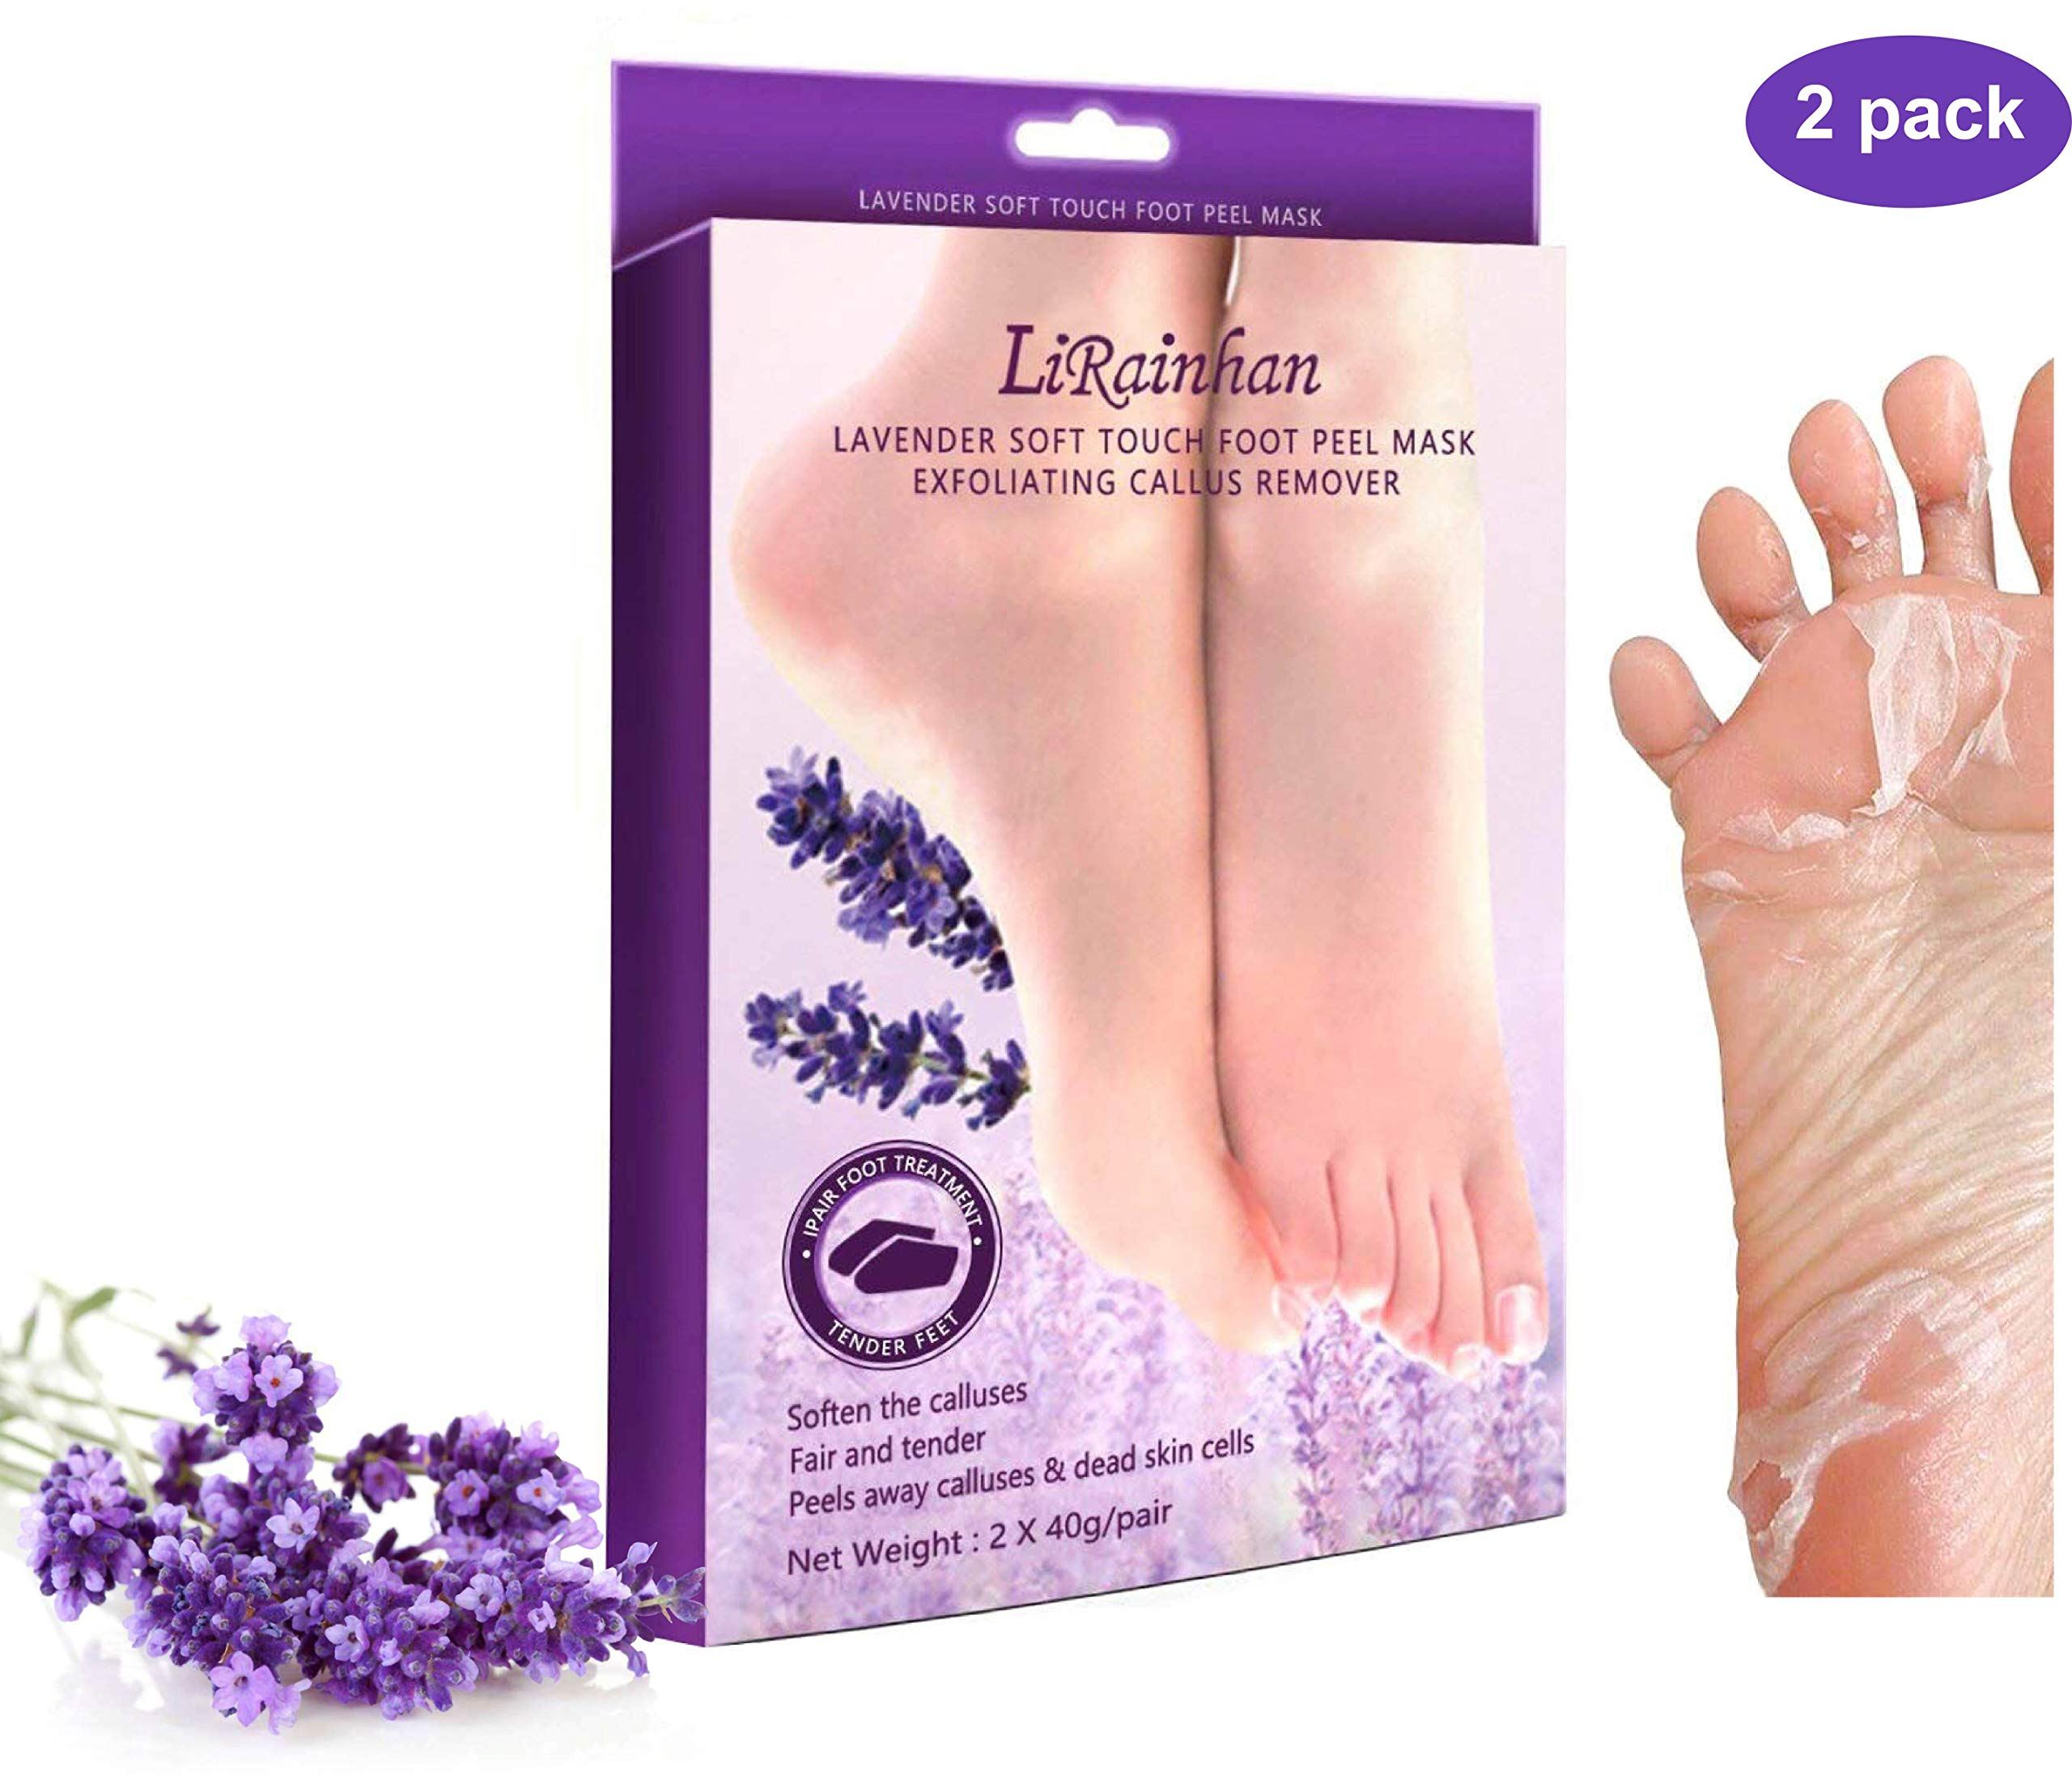 Exfoliating Foot Peel Mask for Smooth Soft Feet-2 Pairs Lavender Booties Peeling Off Dead Skin Cells and Calluses in 1-2 Weeks, 2 Pack For Baby Soft Touch Foot